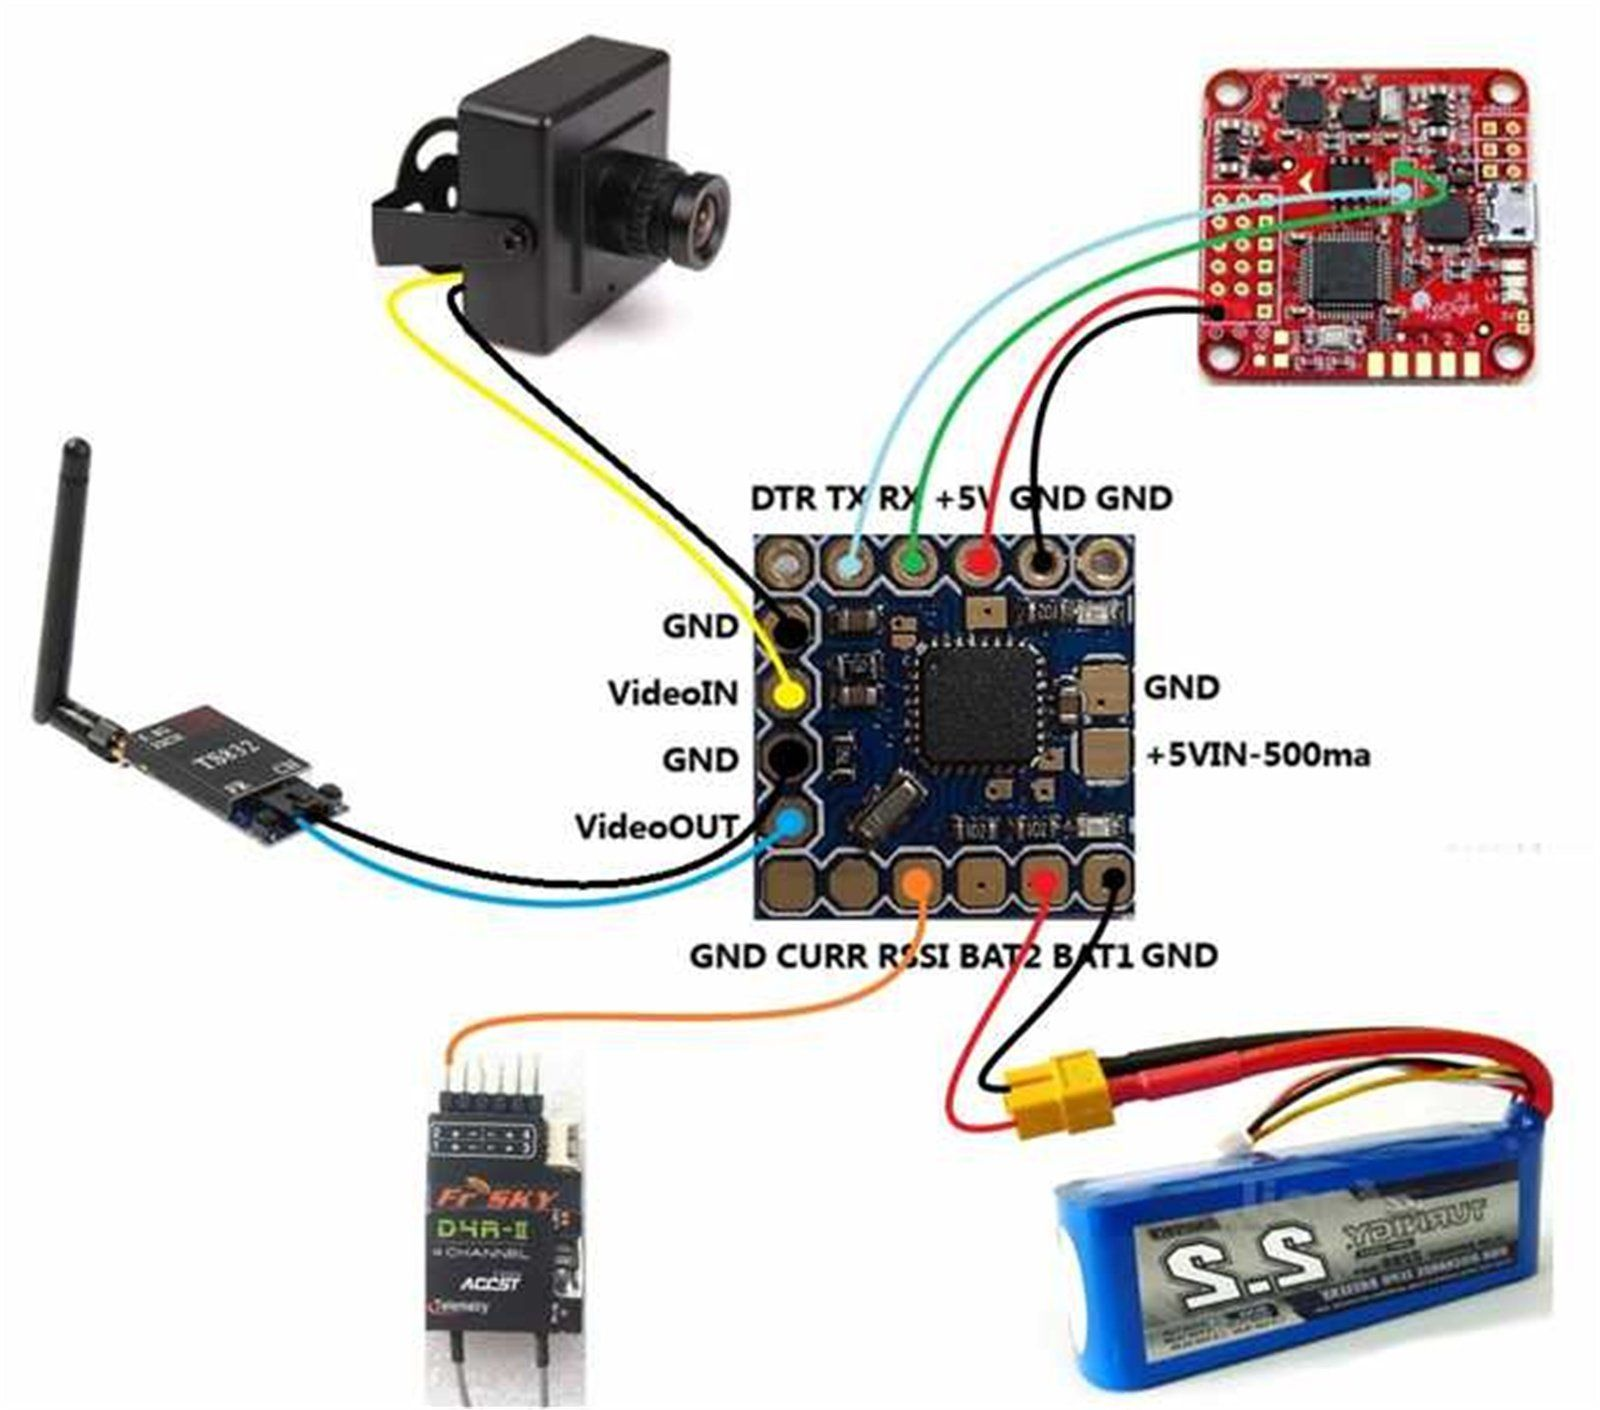 miniosd?w=660 fpv and osd gr33nonline ts832 transmitter wiring diagram at creativeand.co